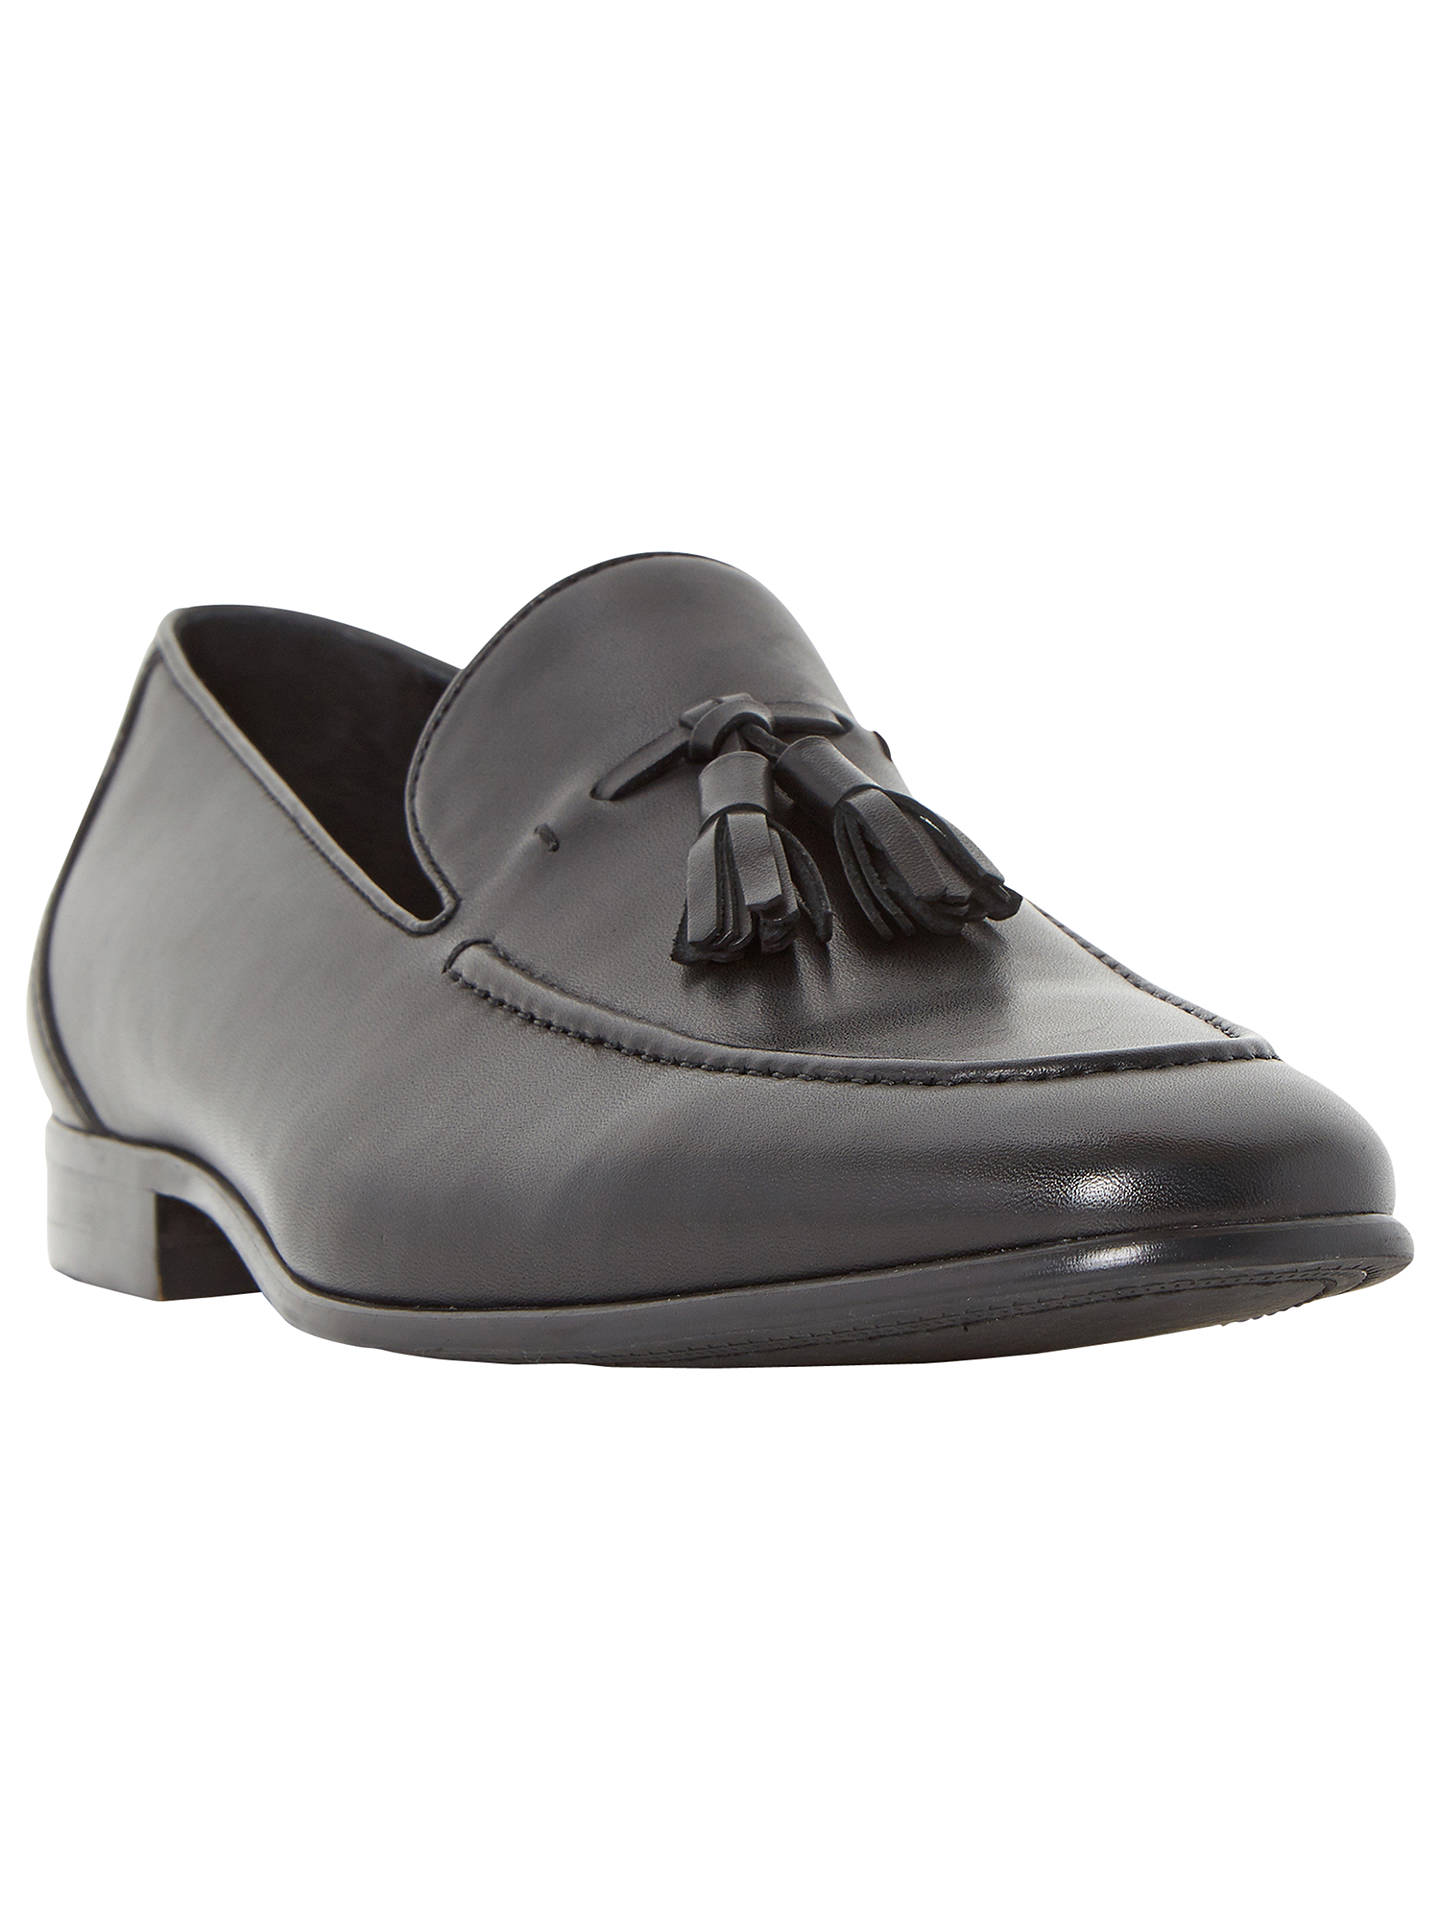 6d027d15439 BuyDune Result Double Tassel Loafers